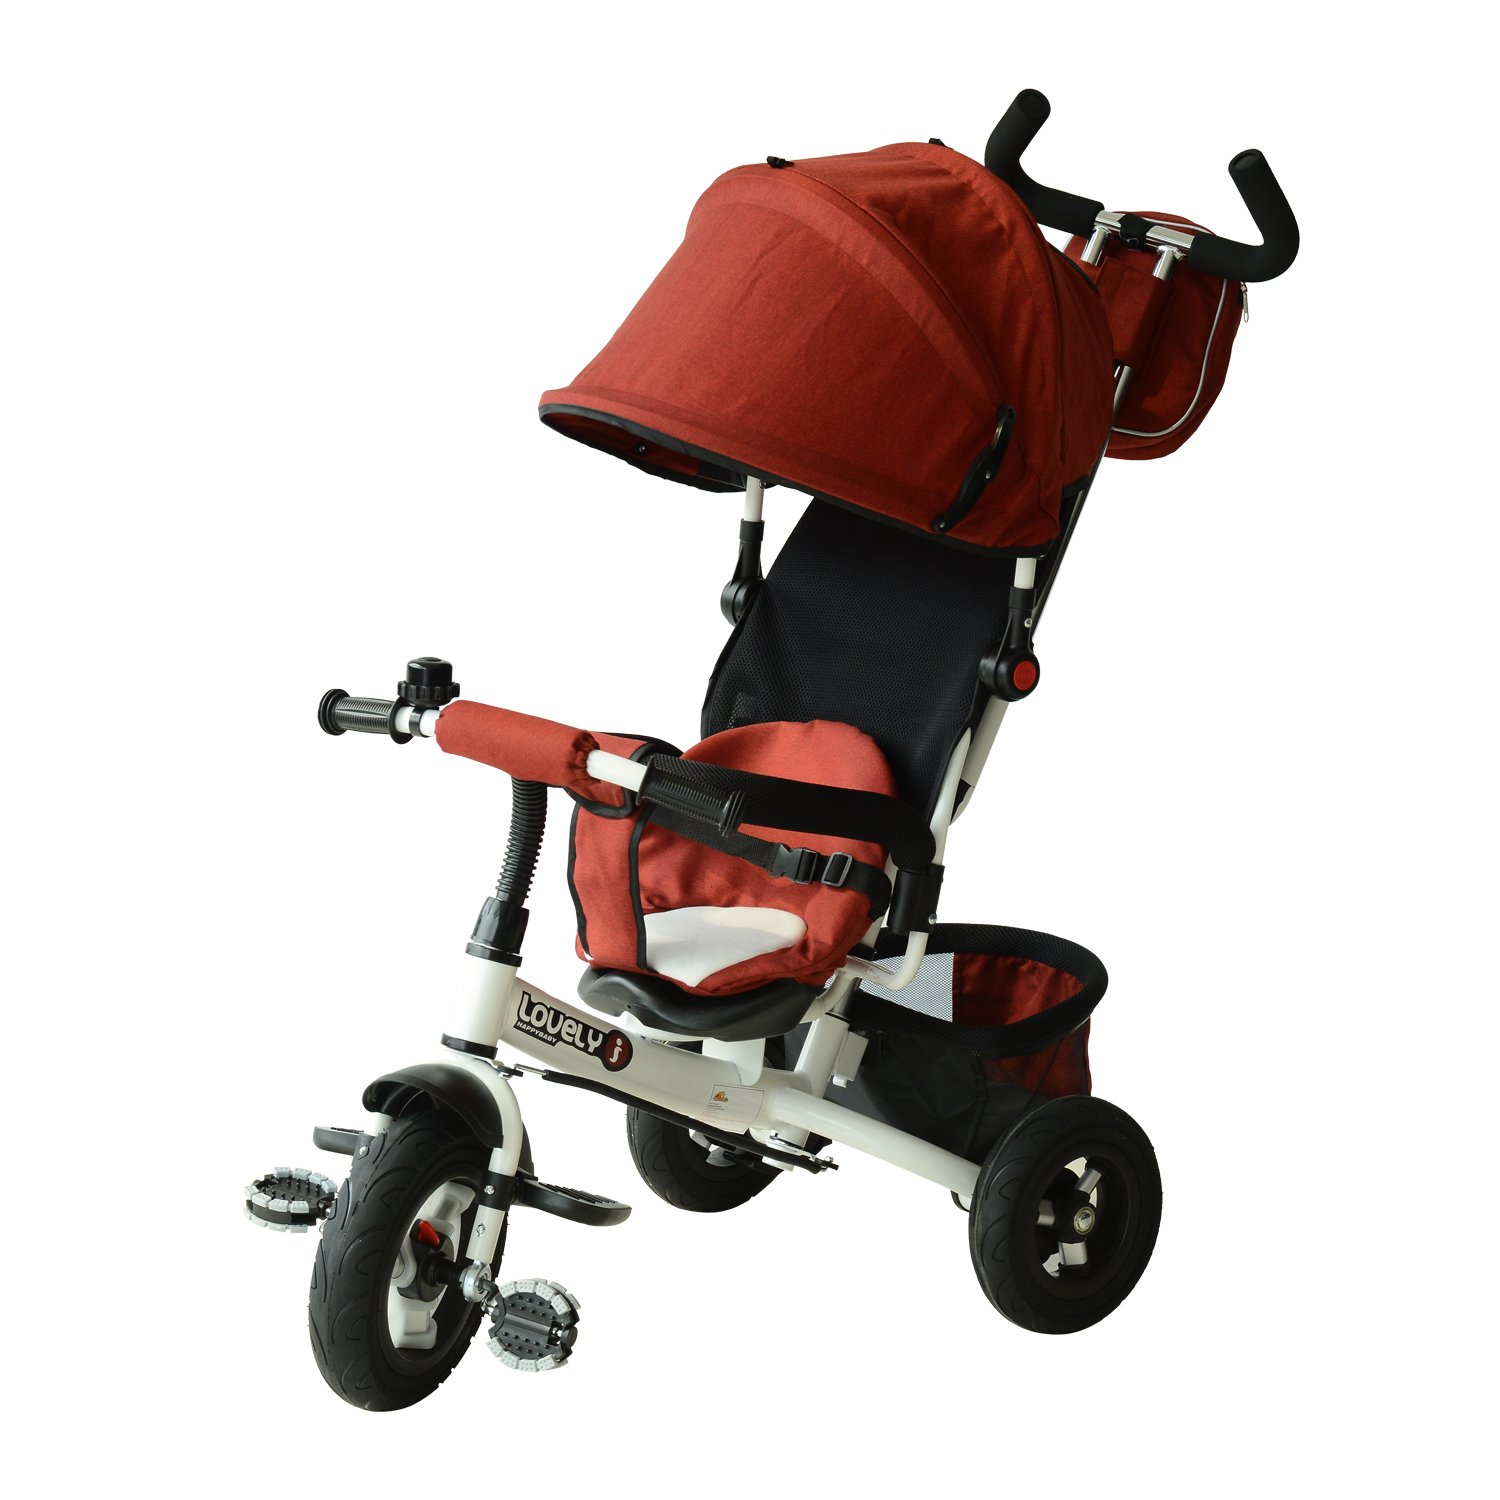 Qaba 2-in-1 Lightweight Steel Adjustable Convertible Tricycle Stroller - Red by Qaba